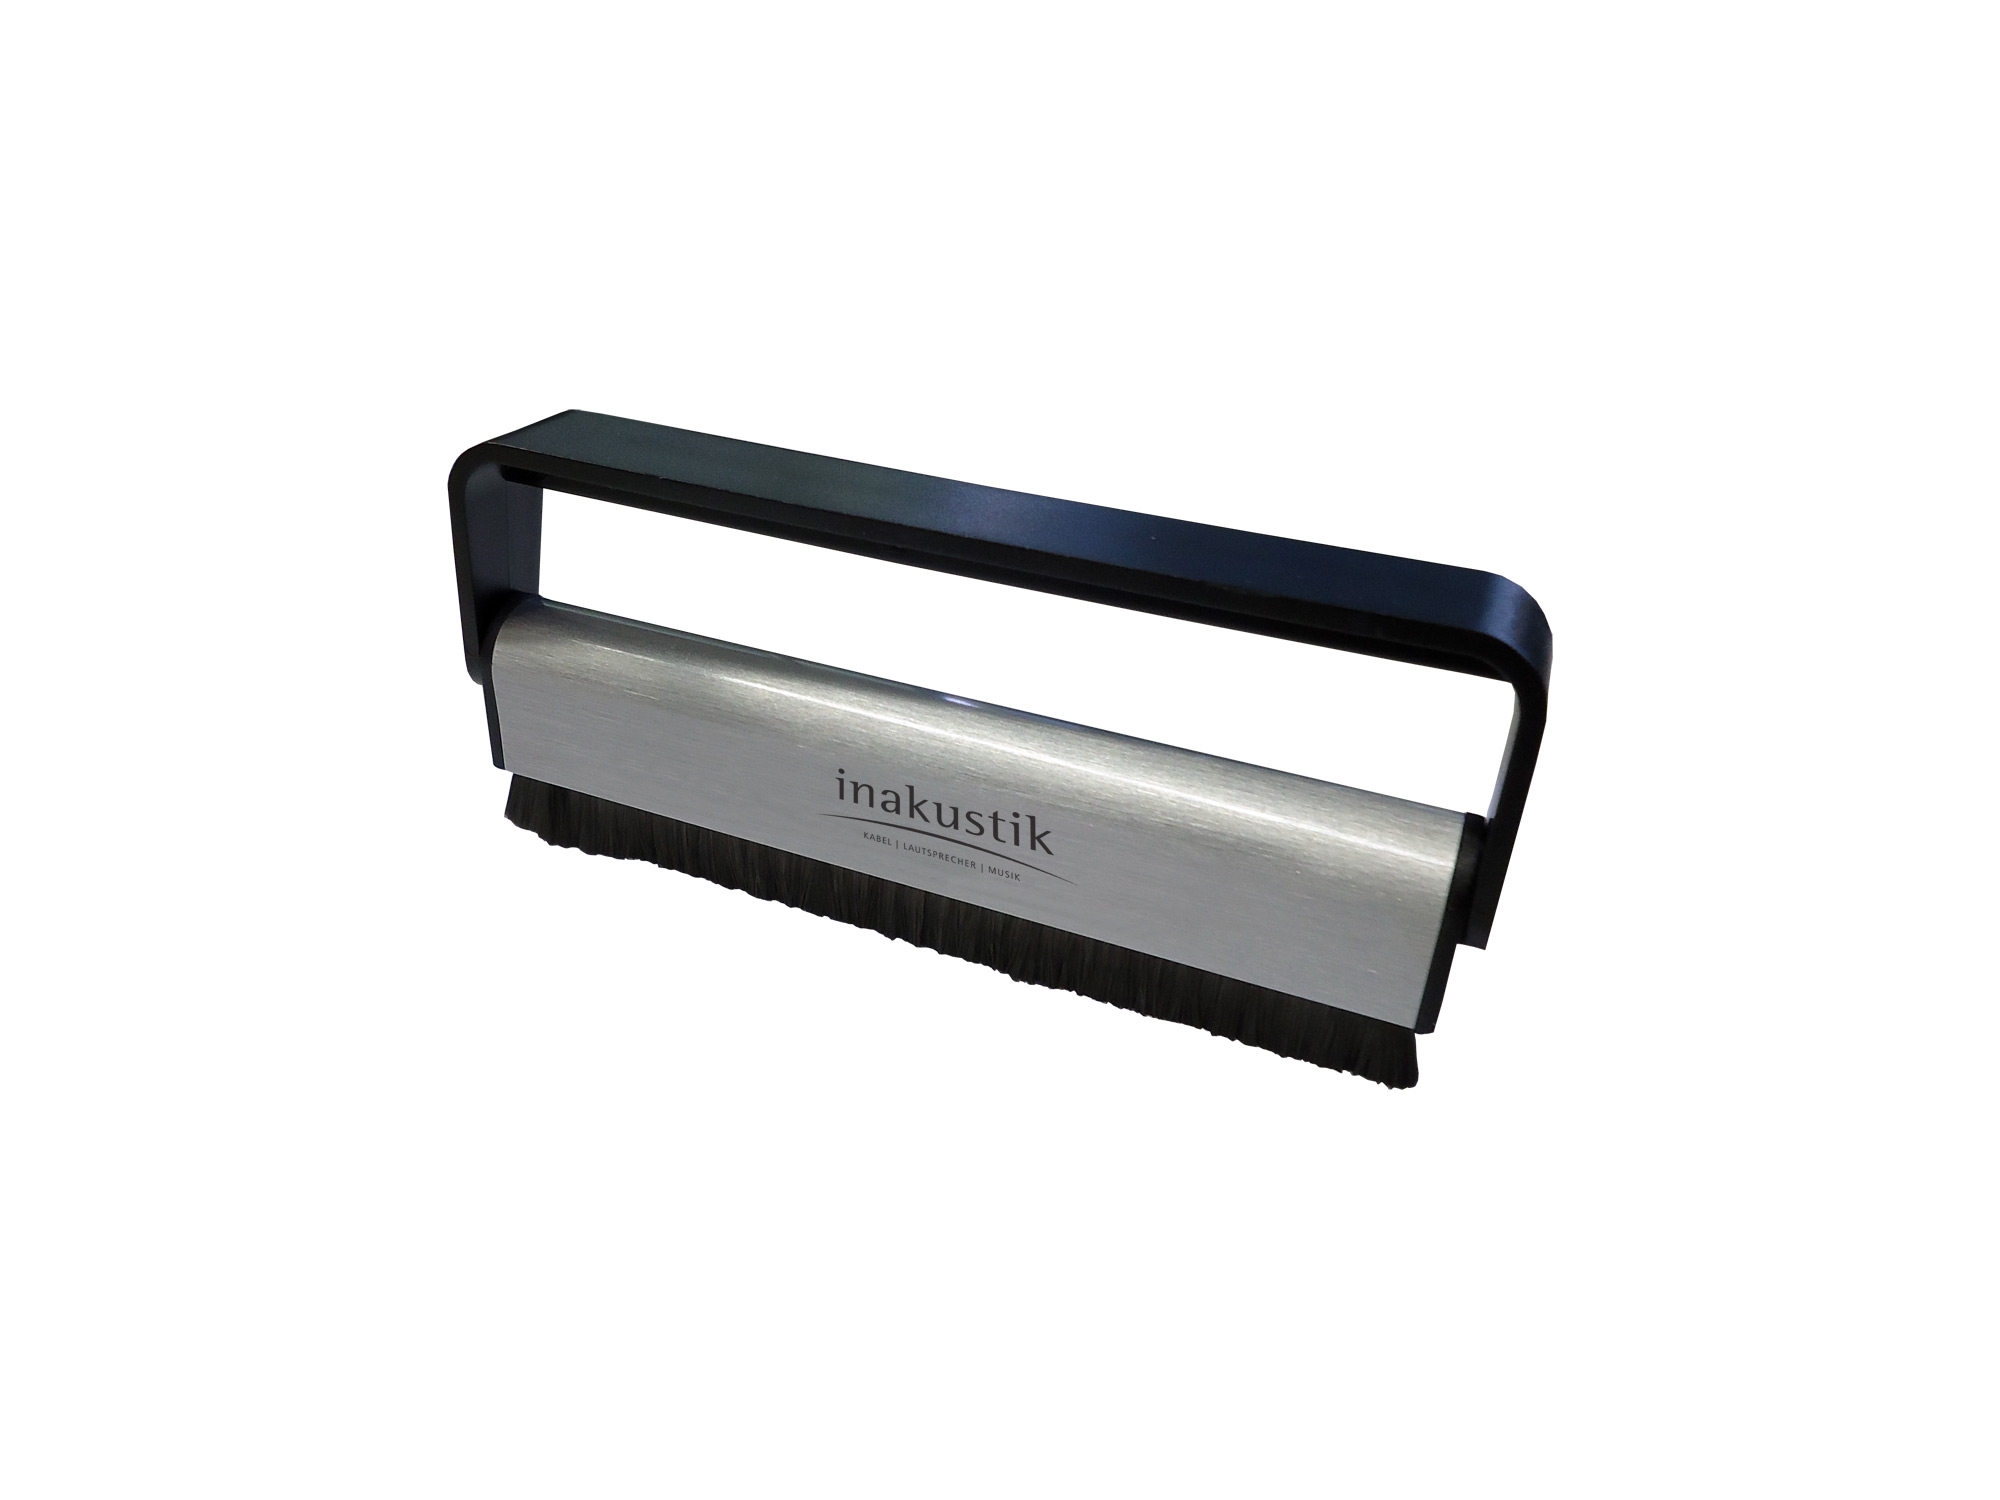 INAKUSTIK Premium Record Carbon Brush